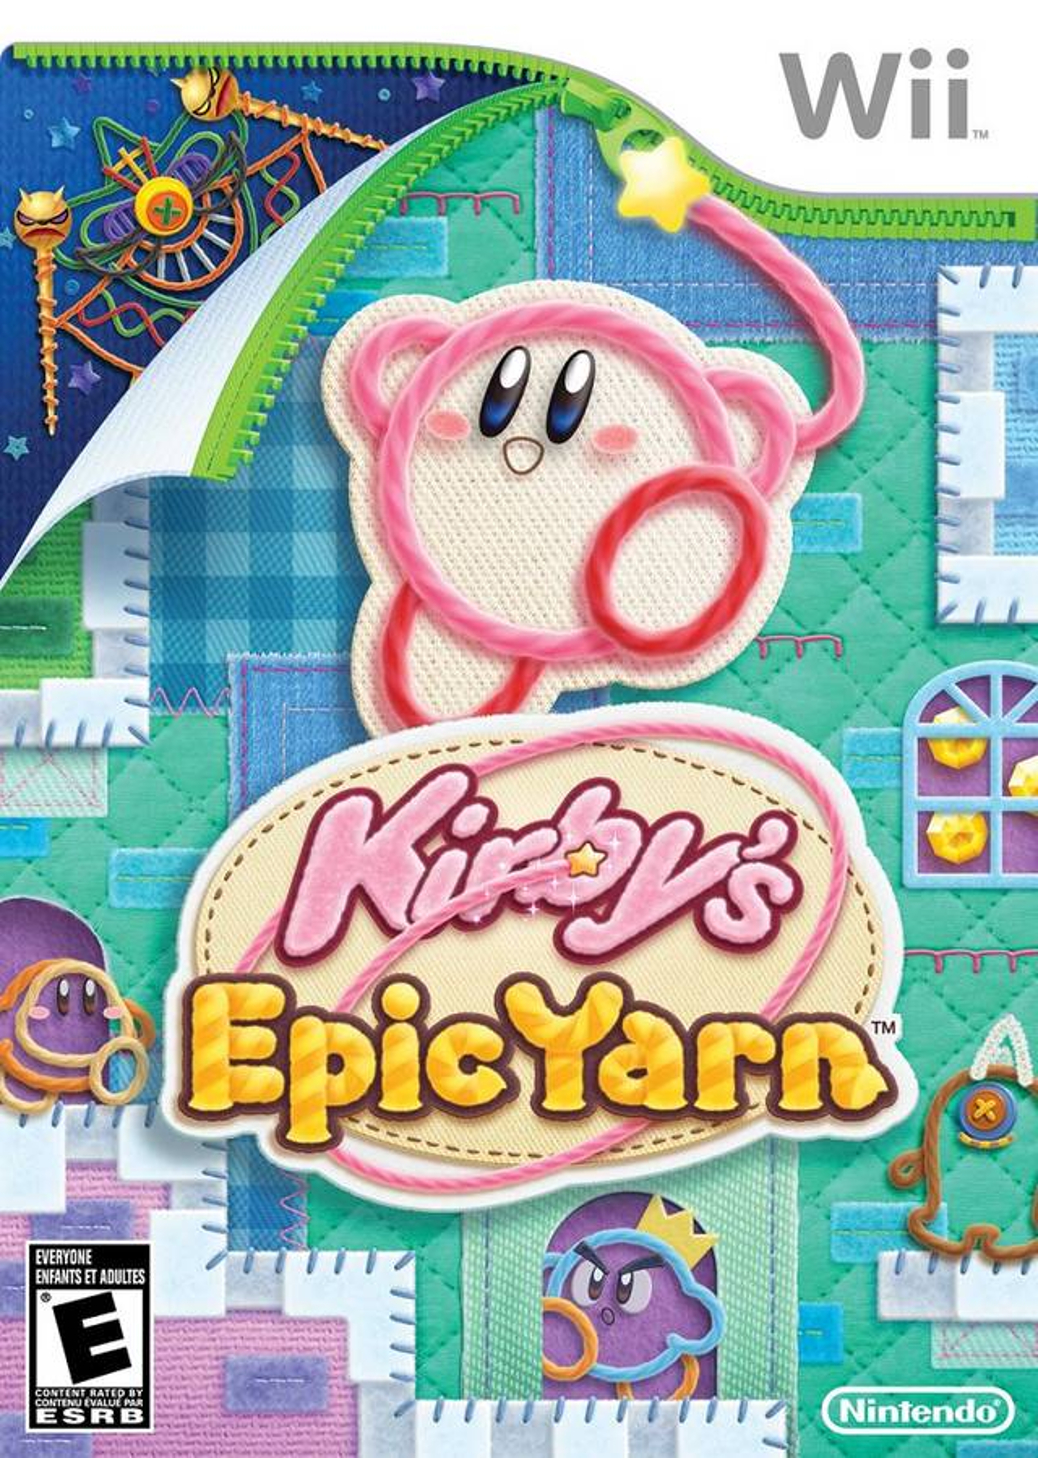 Kirby's Epic Yarn - Wii - North American Box Art